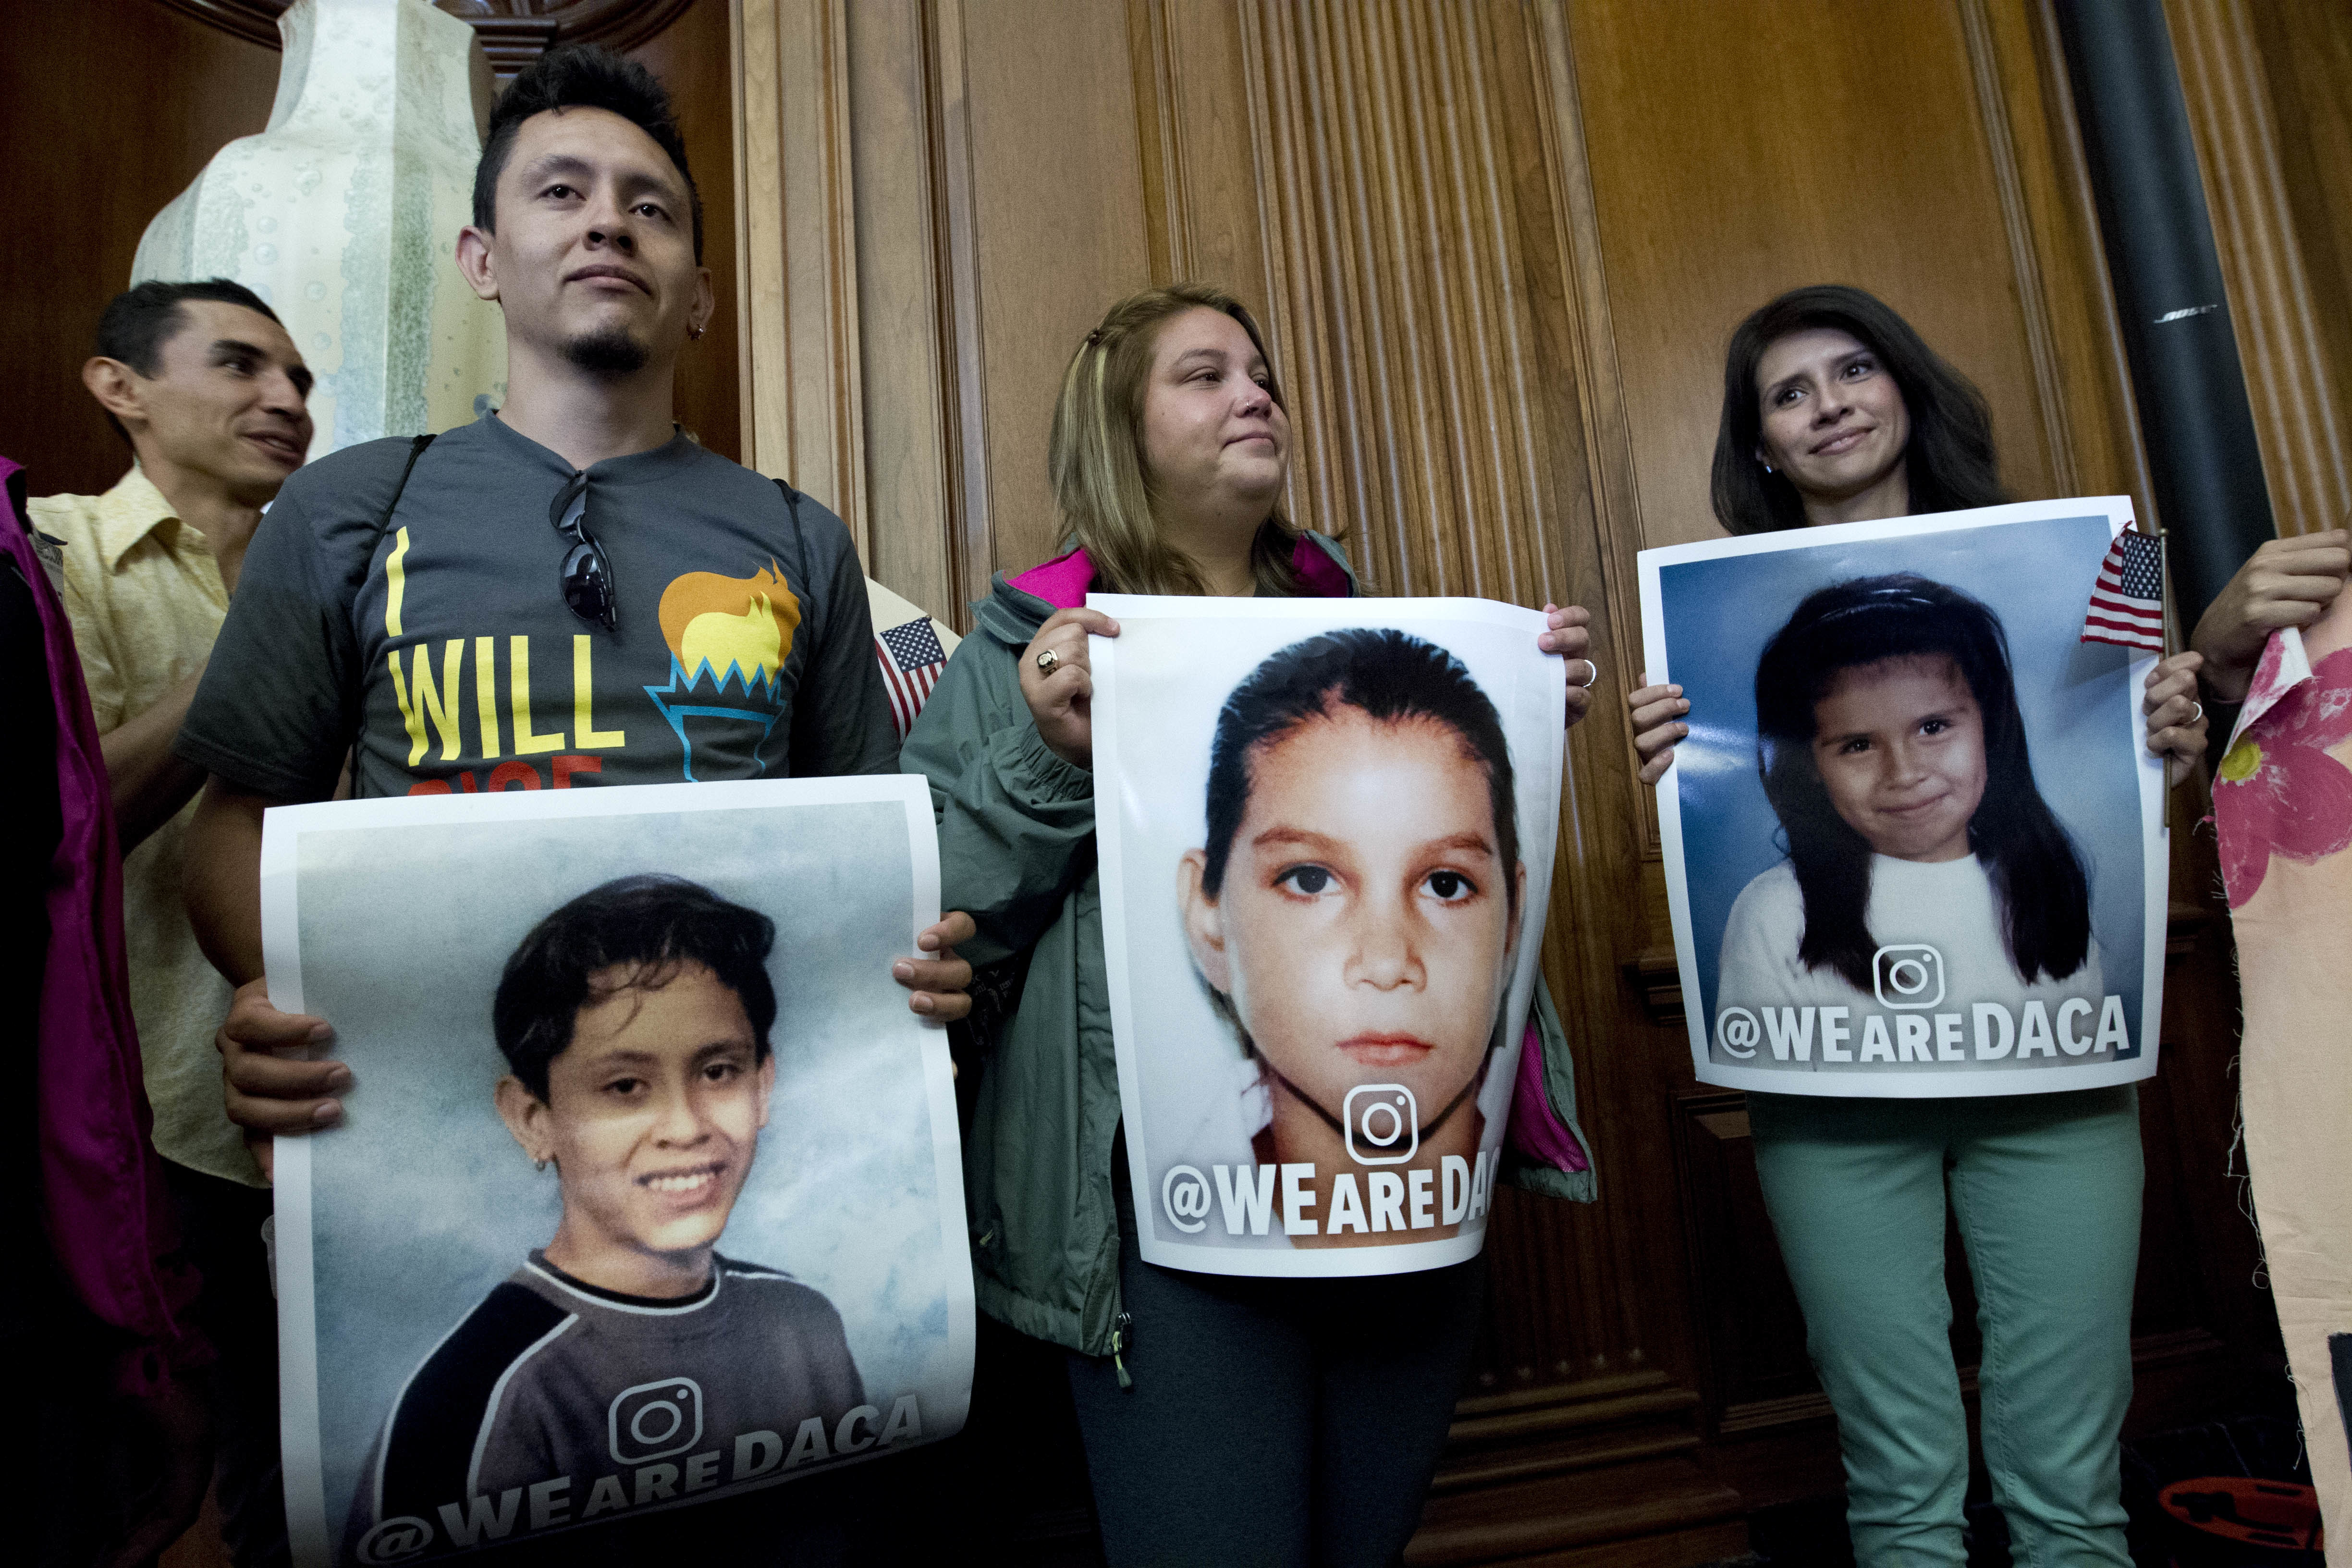 DACA recipients hold pictures of themselves as children during a Congressional meeting